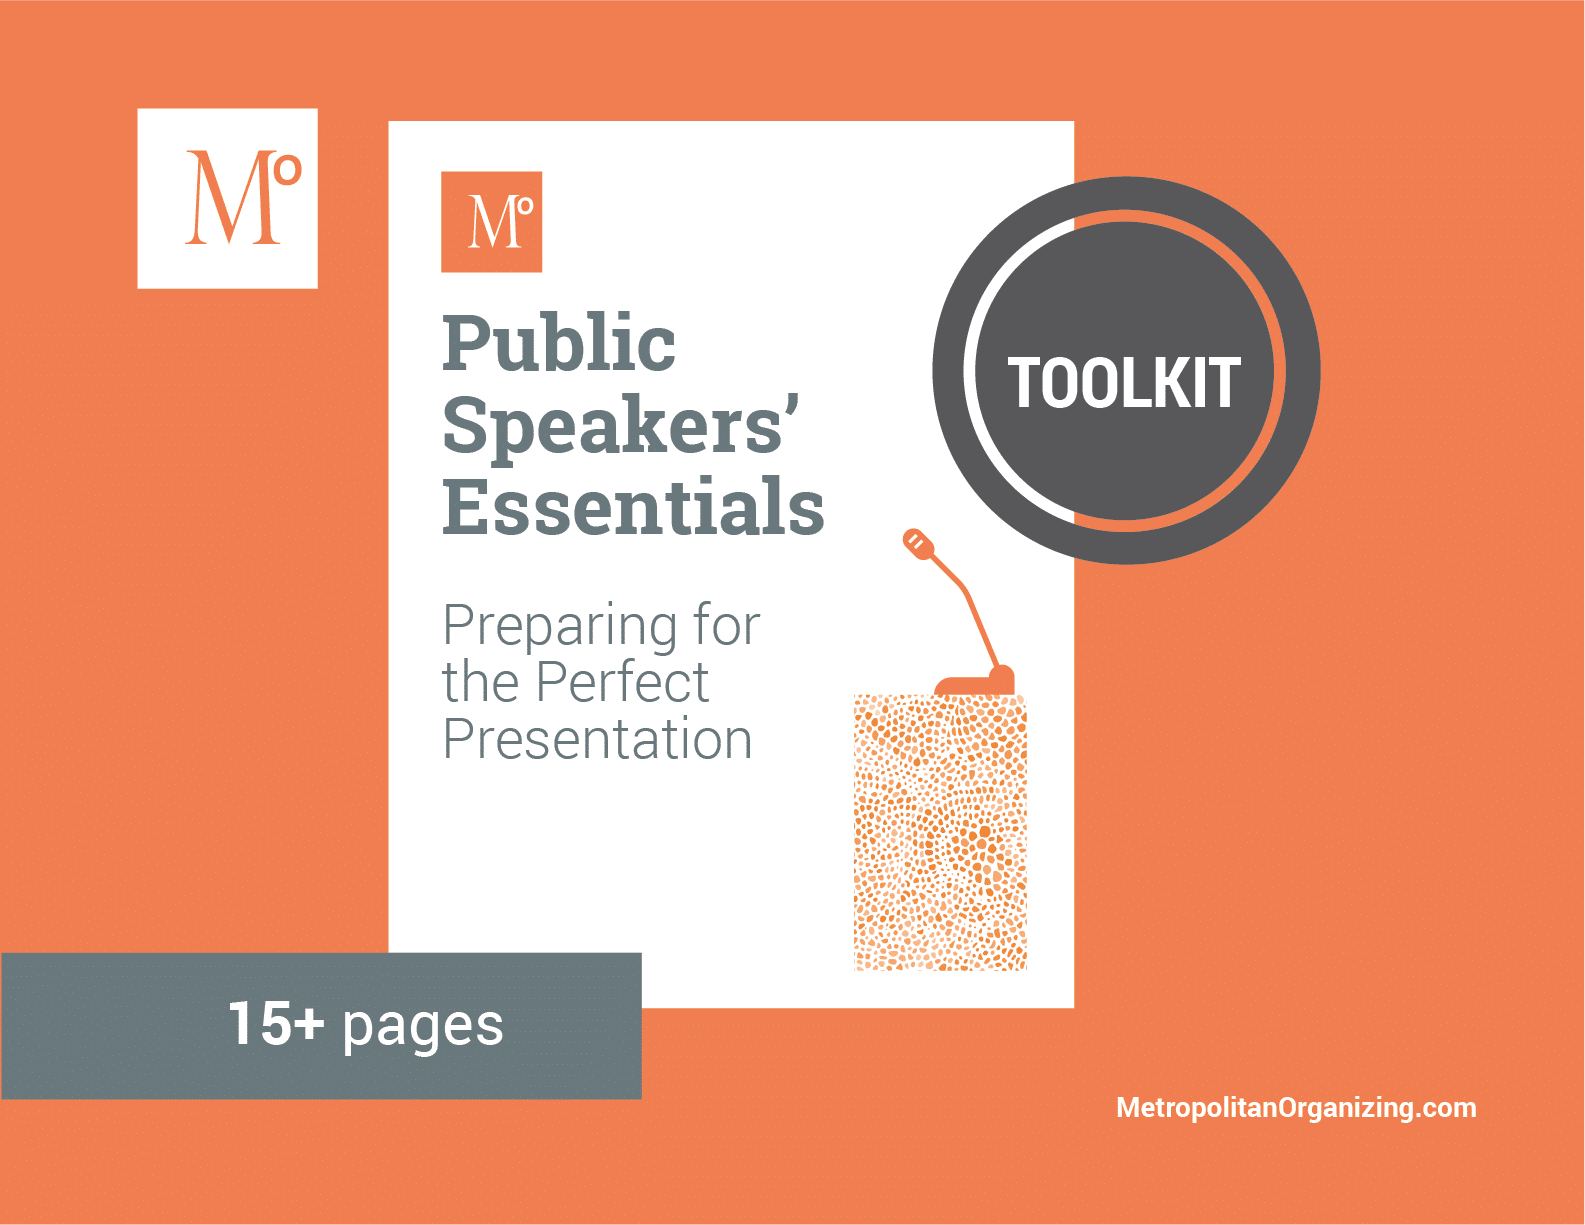 Get All the Speakers' Essential Details Here